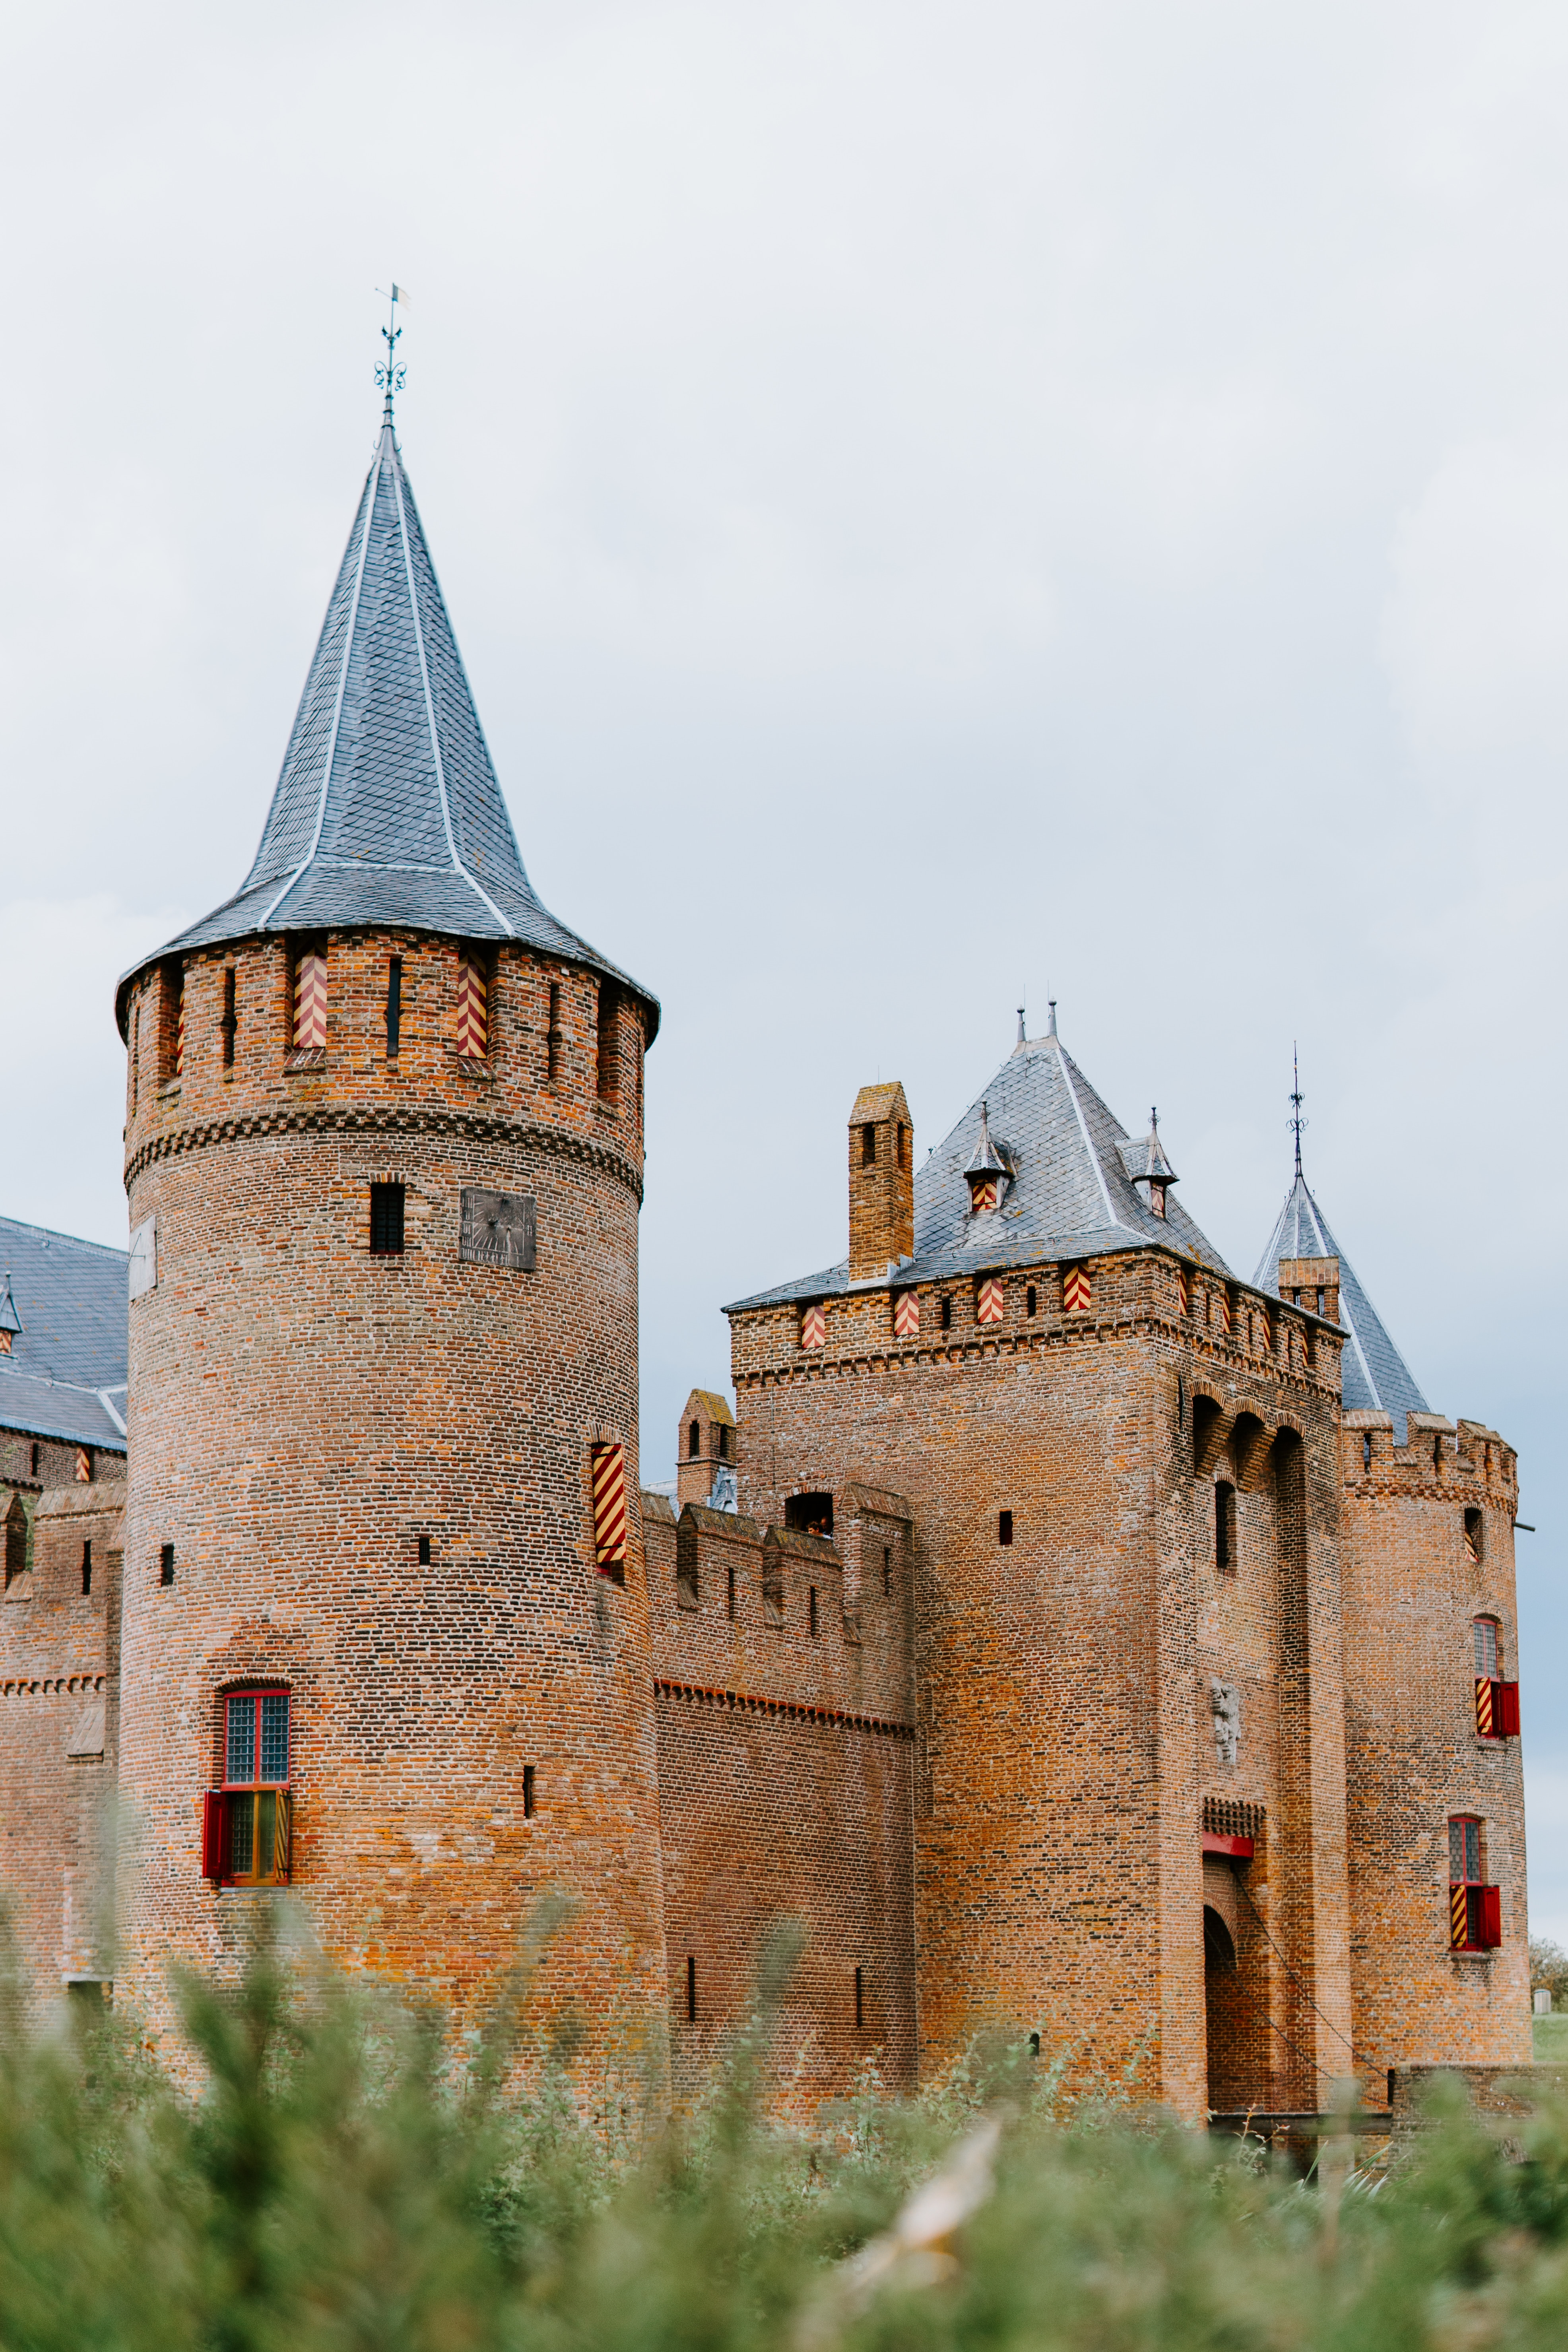 Muiderslot, Photo by Jean Carlo Emer on Unsplash